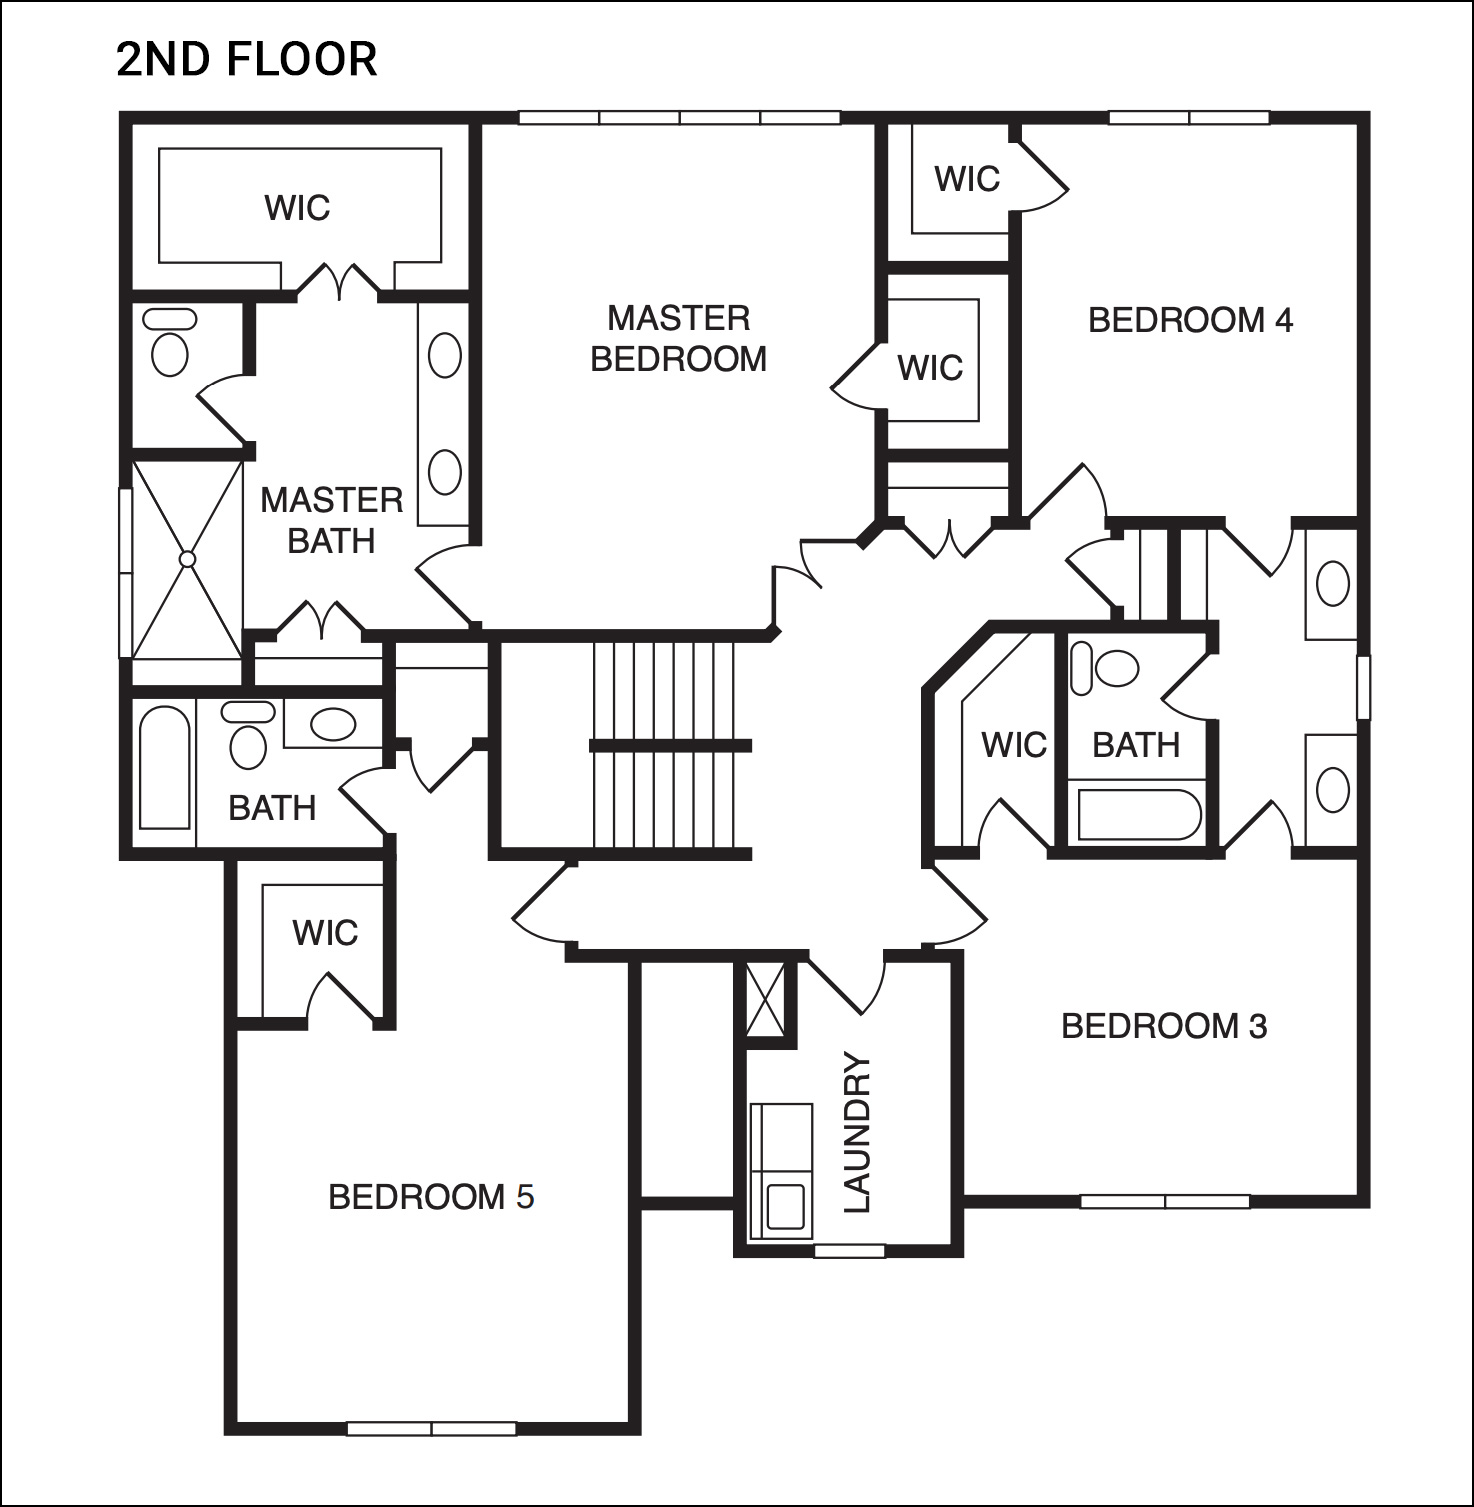 The Sycamore Model - Second Floor